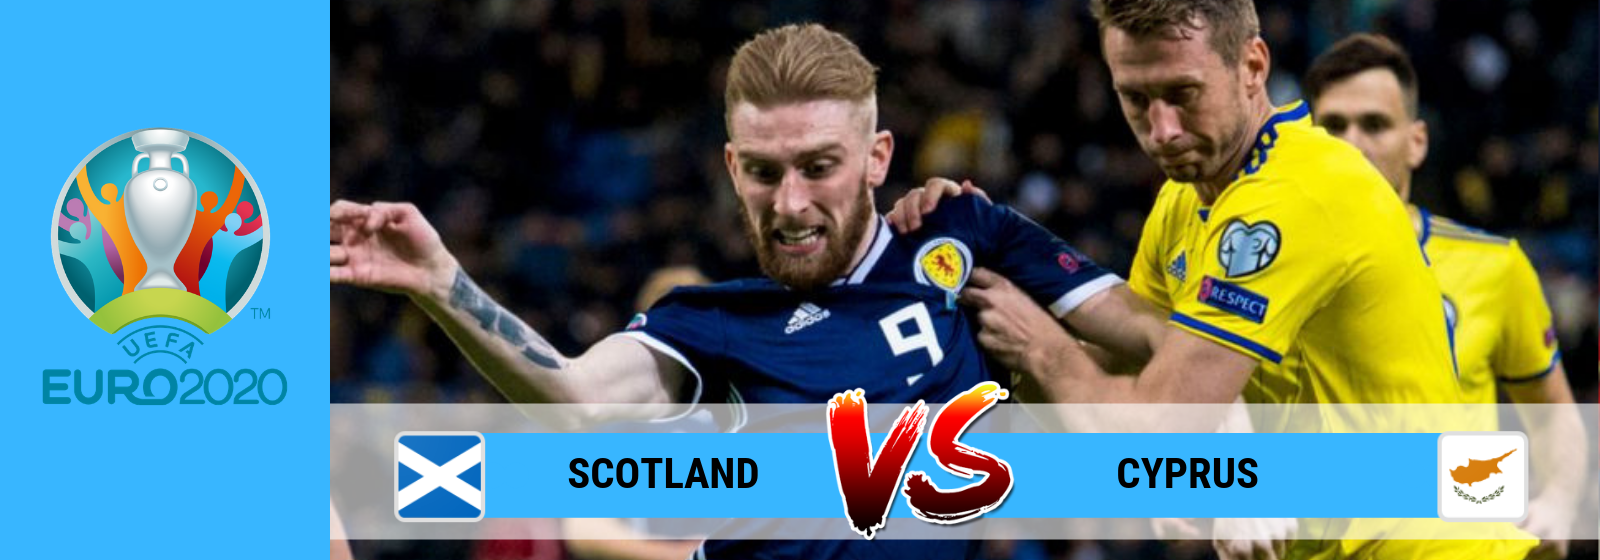 UEFA Euro 2020 Scotland vs Cyprus Asian Connect